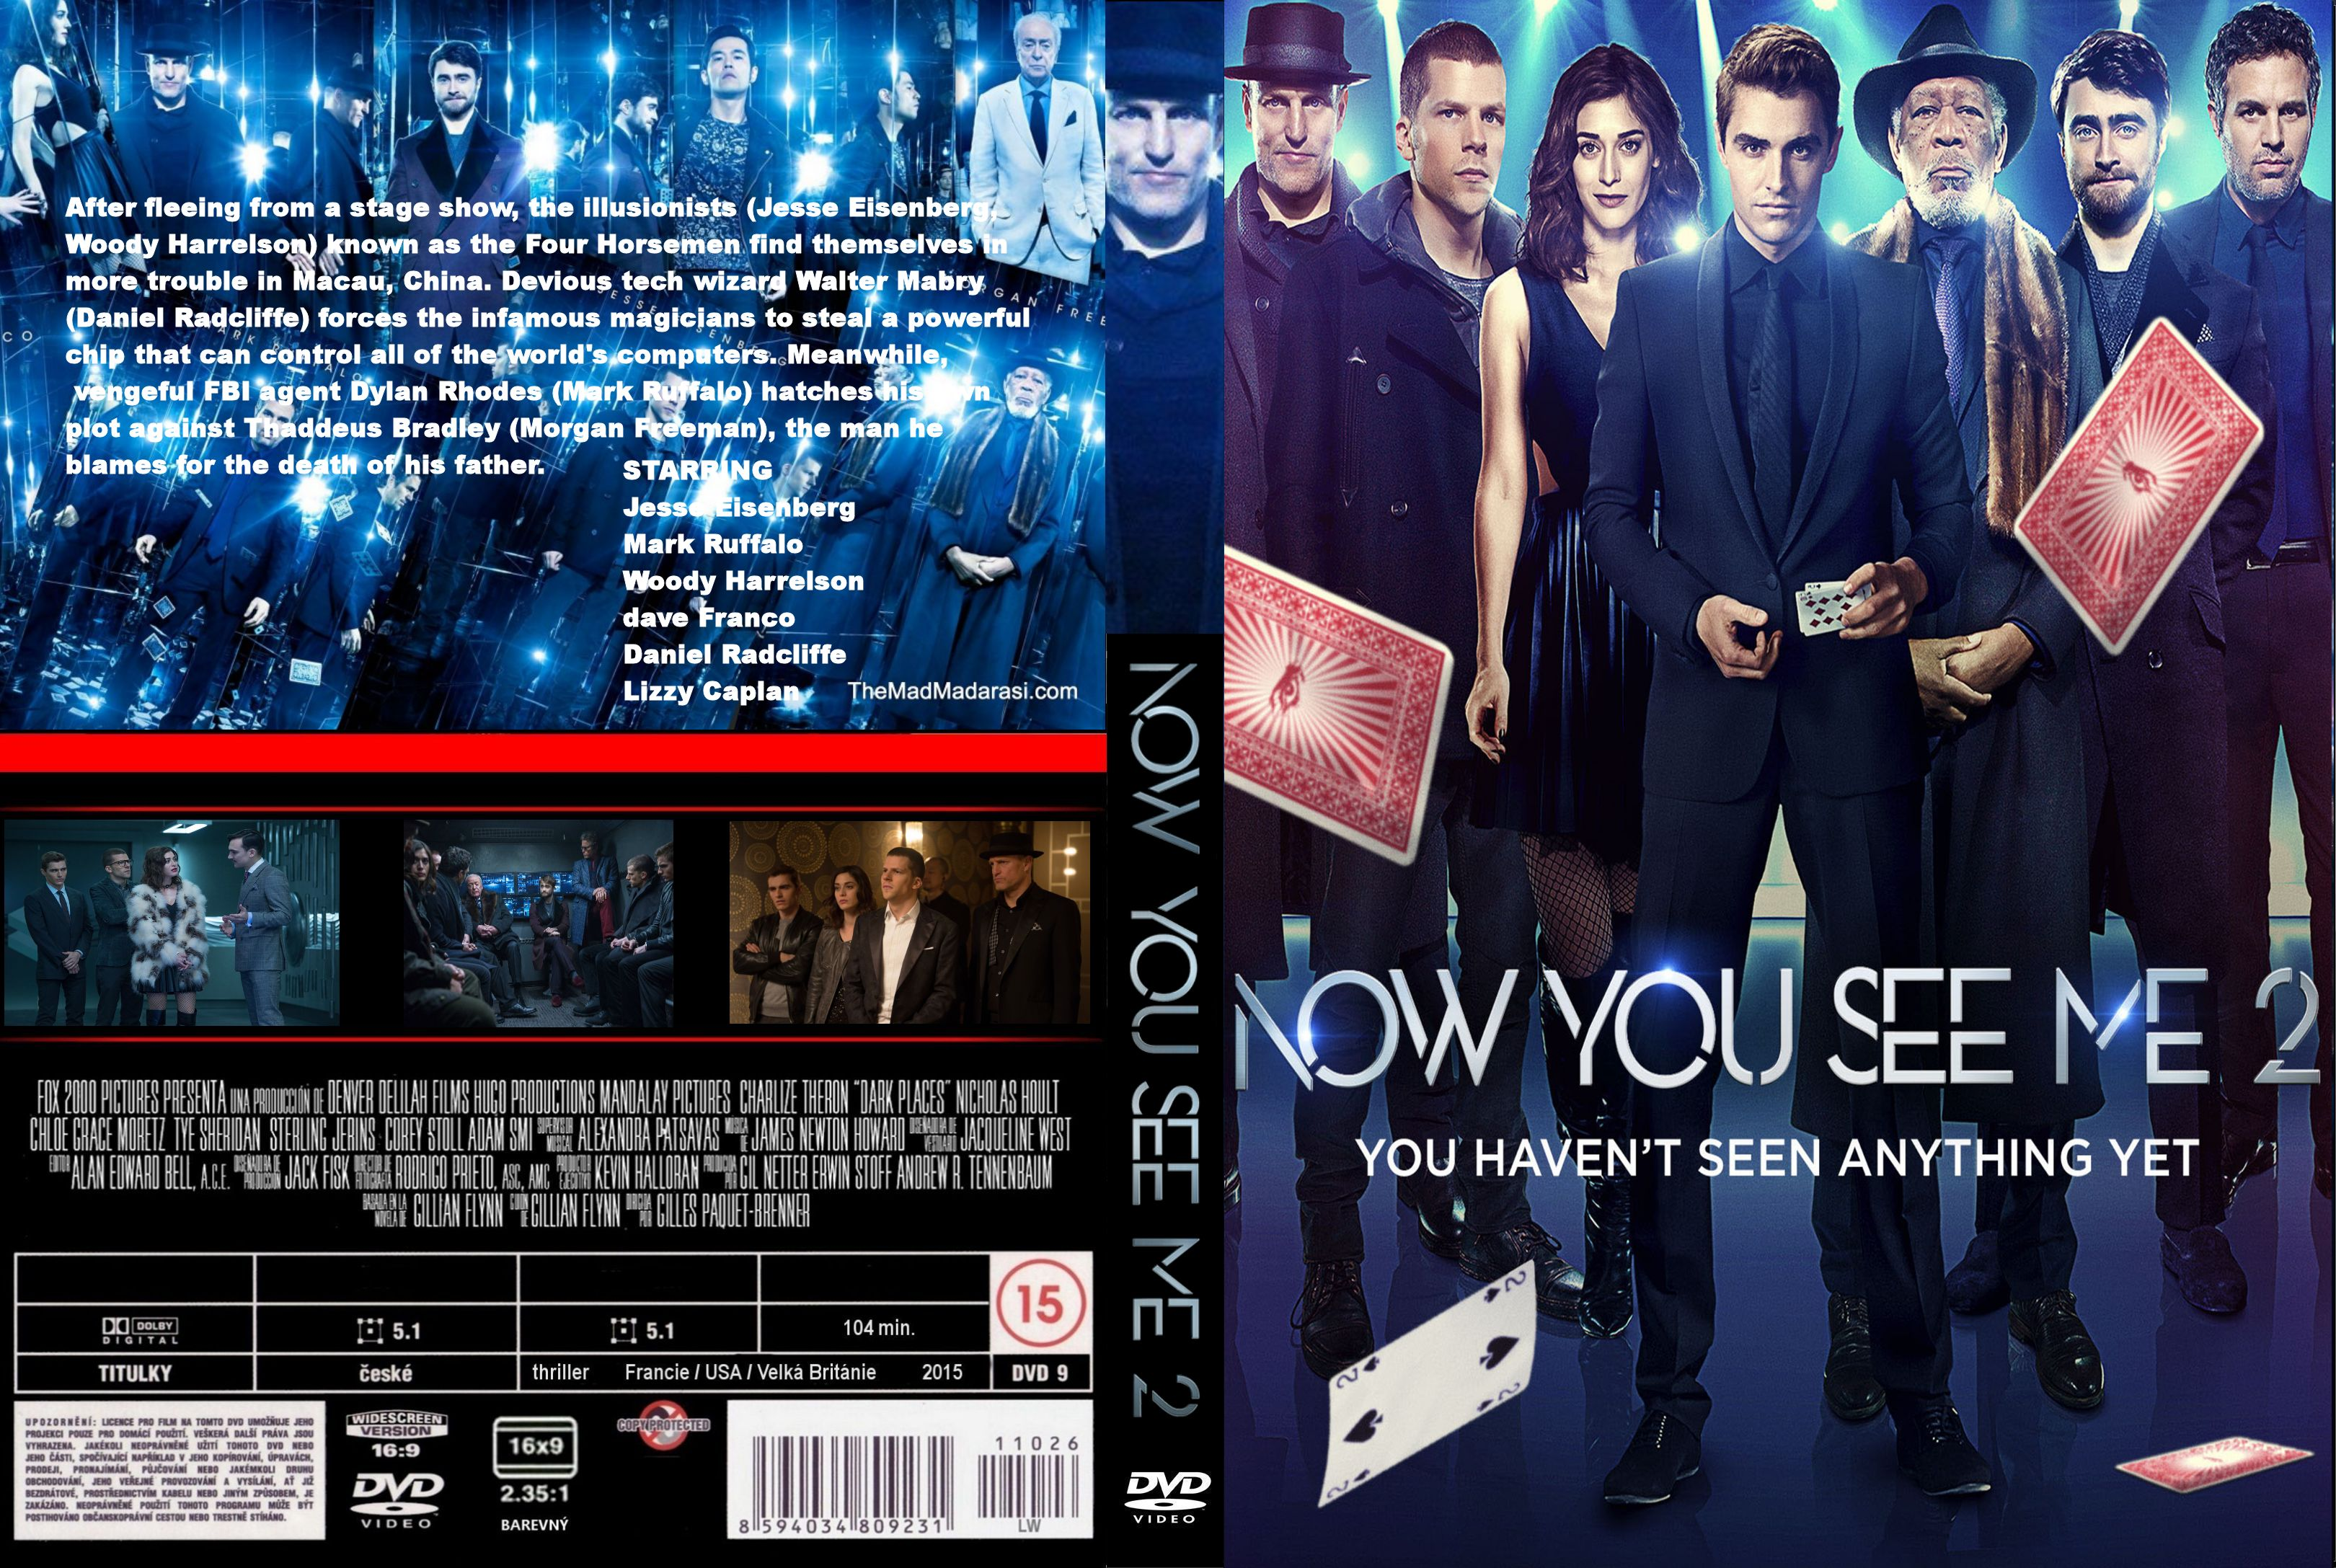 now you see me 2 download full movie hd